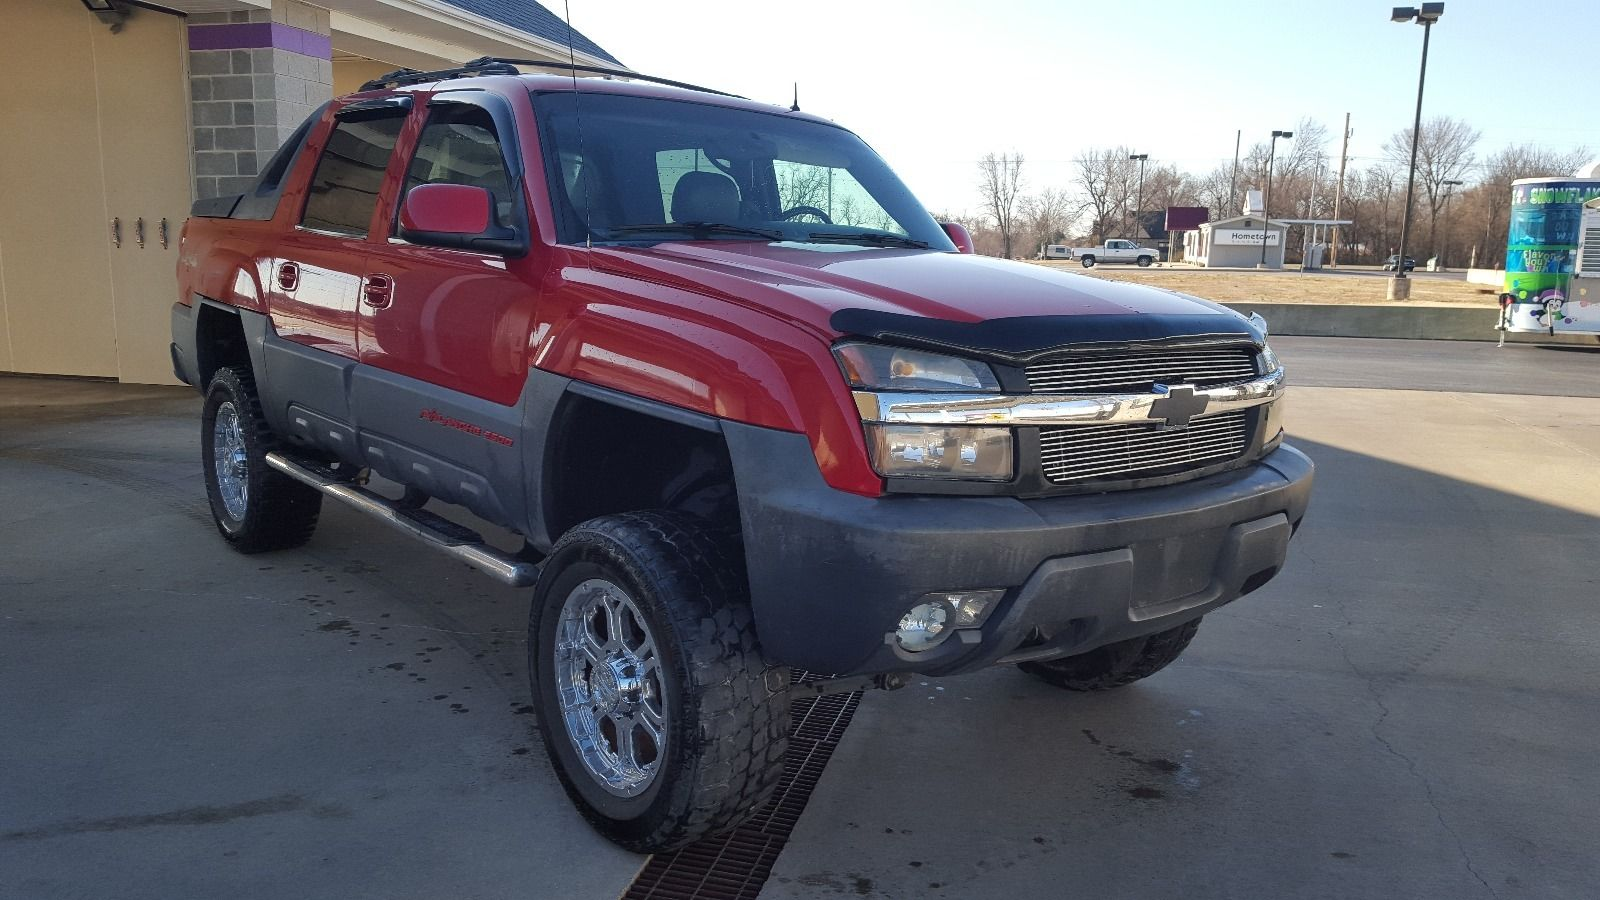 2002 Chevrolet Avalanche 2500 4×4 Crew Cab for sale